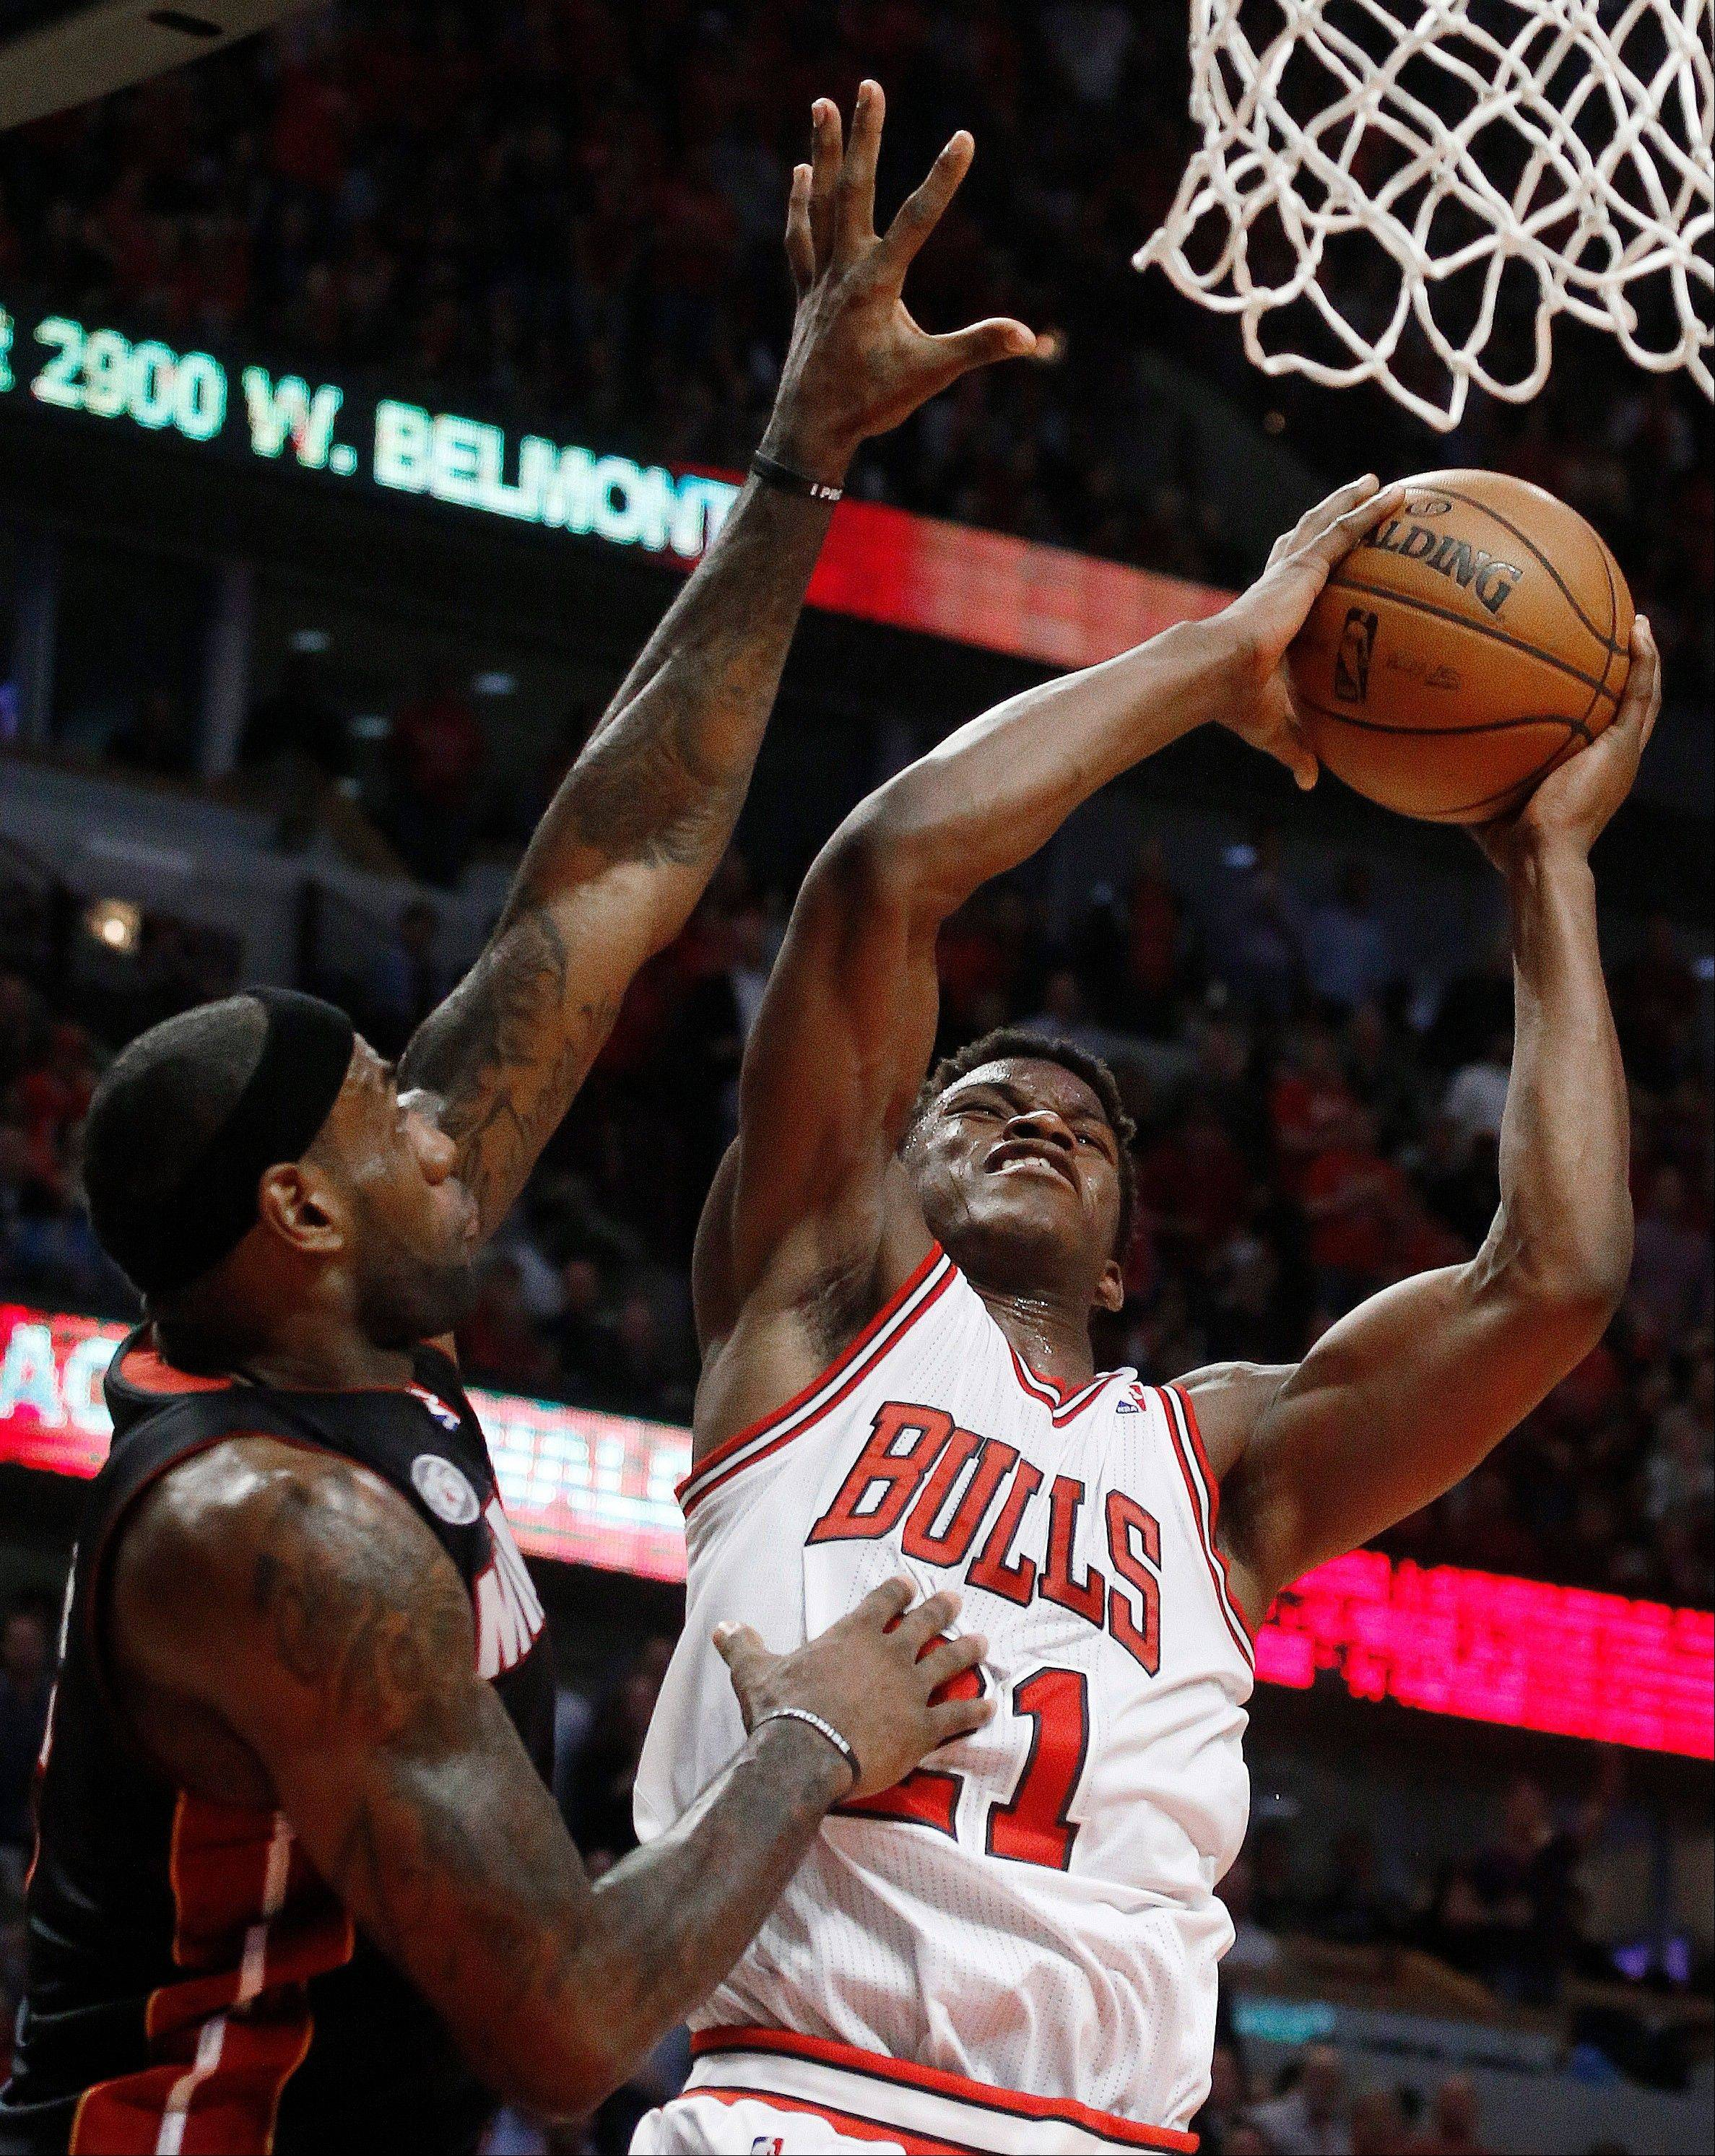 Chicago Bulls small forward Jimmy Butler (21) shoots against Miami Heat small forward LeBron James (6) during the second half of Game 3 of an NBA basketball playoffs Eastern Conference semifinal on Friday, May 10, 2013, in Chicago.